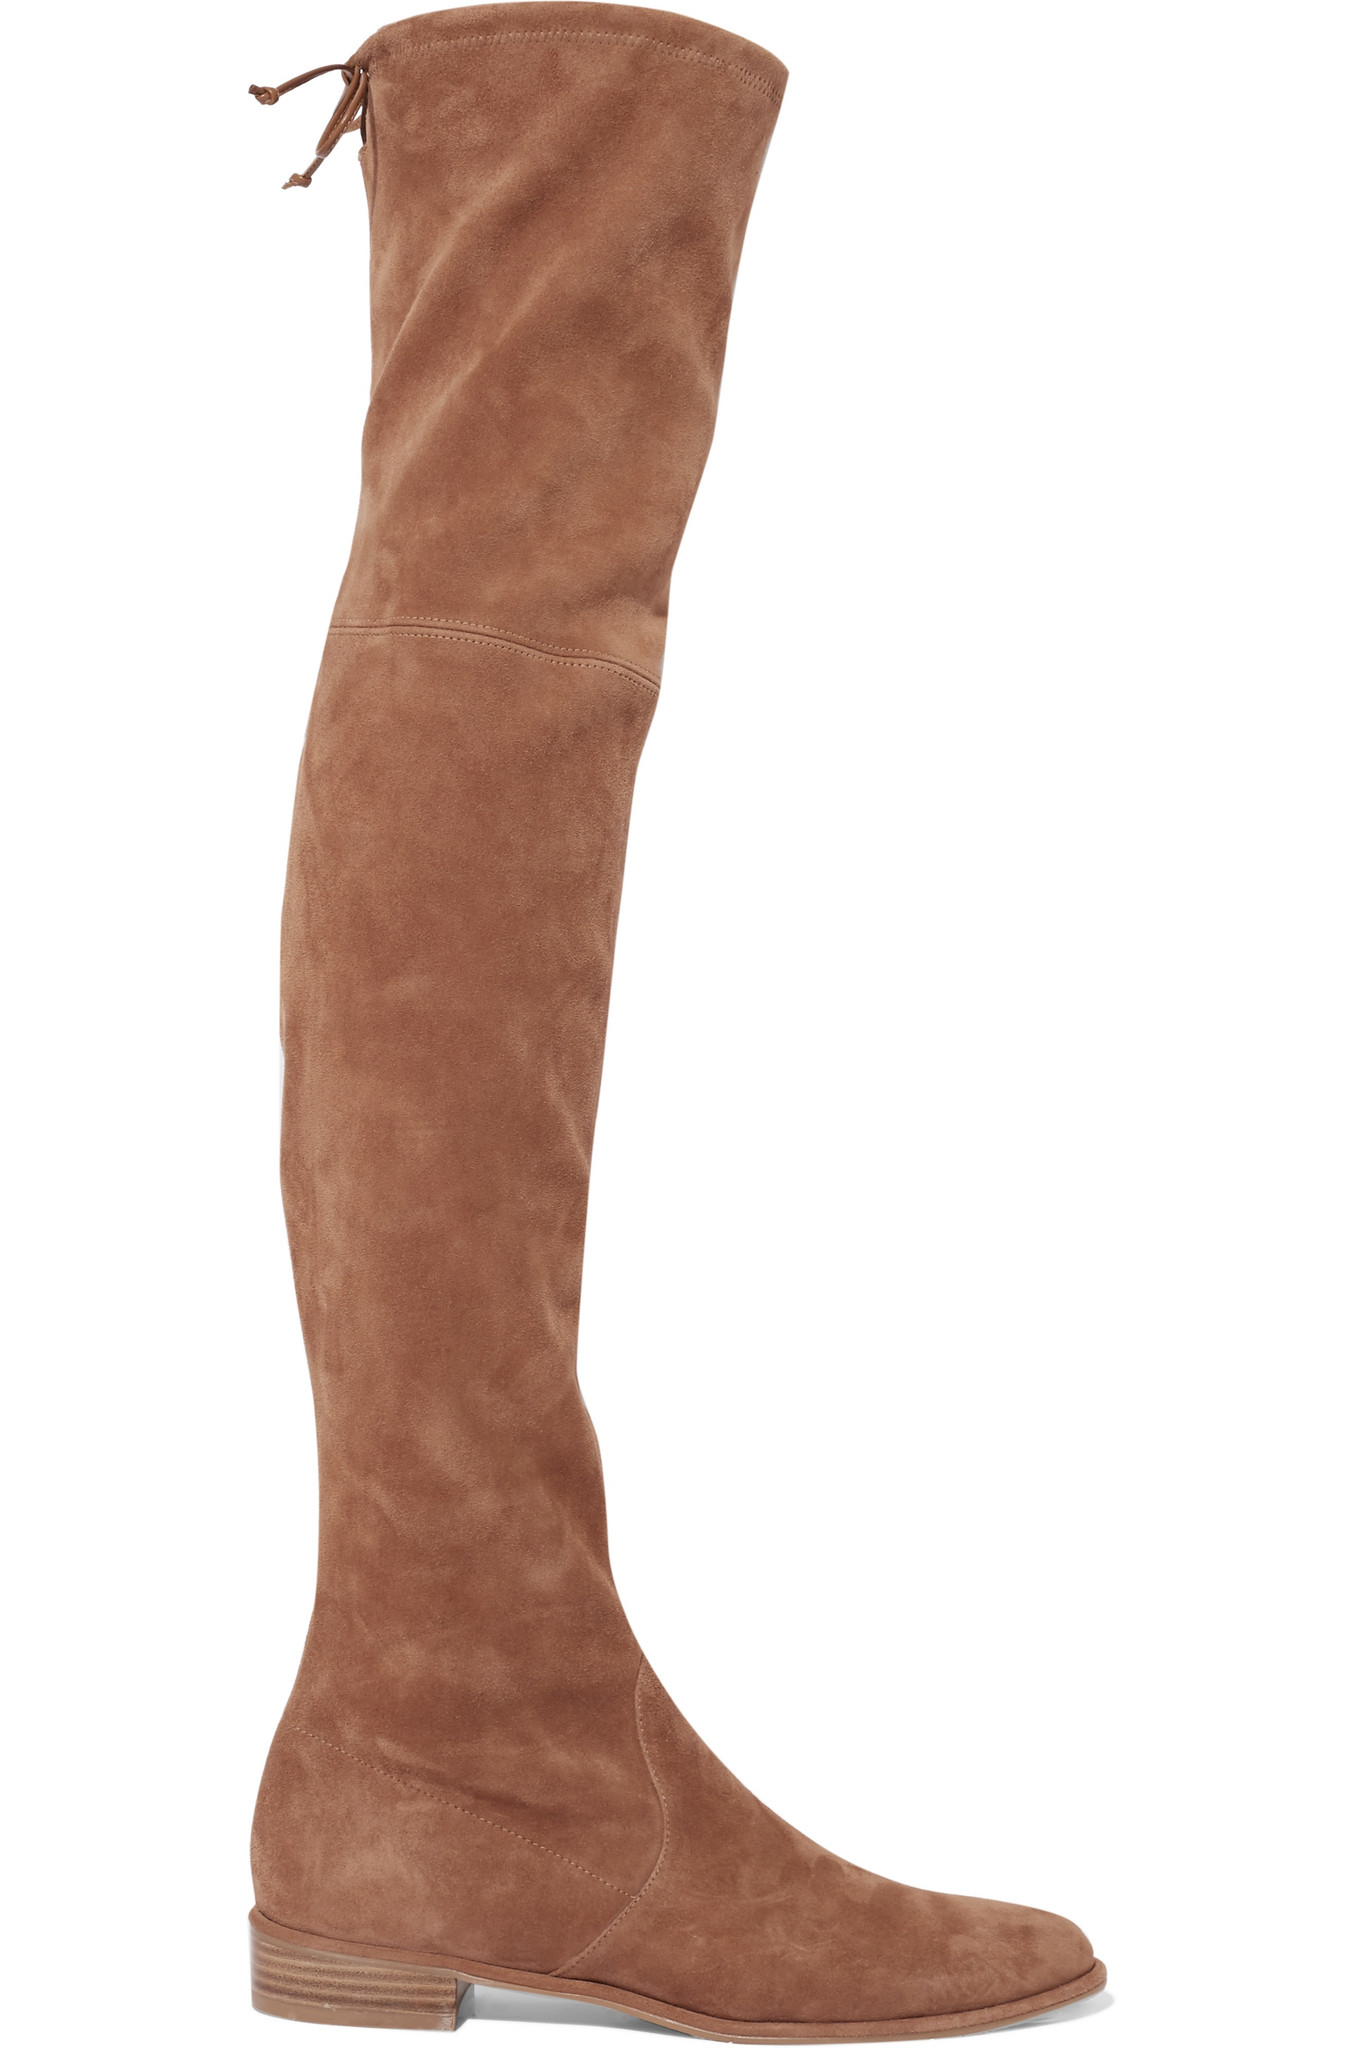 stuart weitzman lowland stretch suede the knee boots